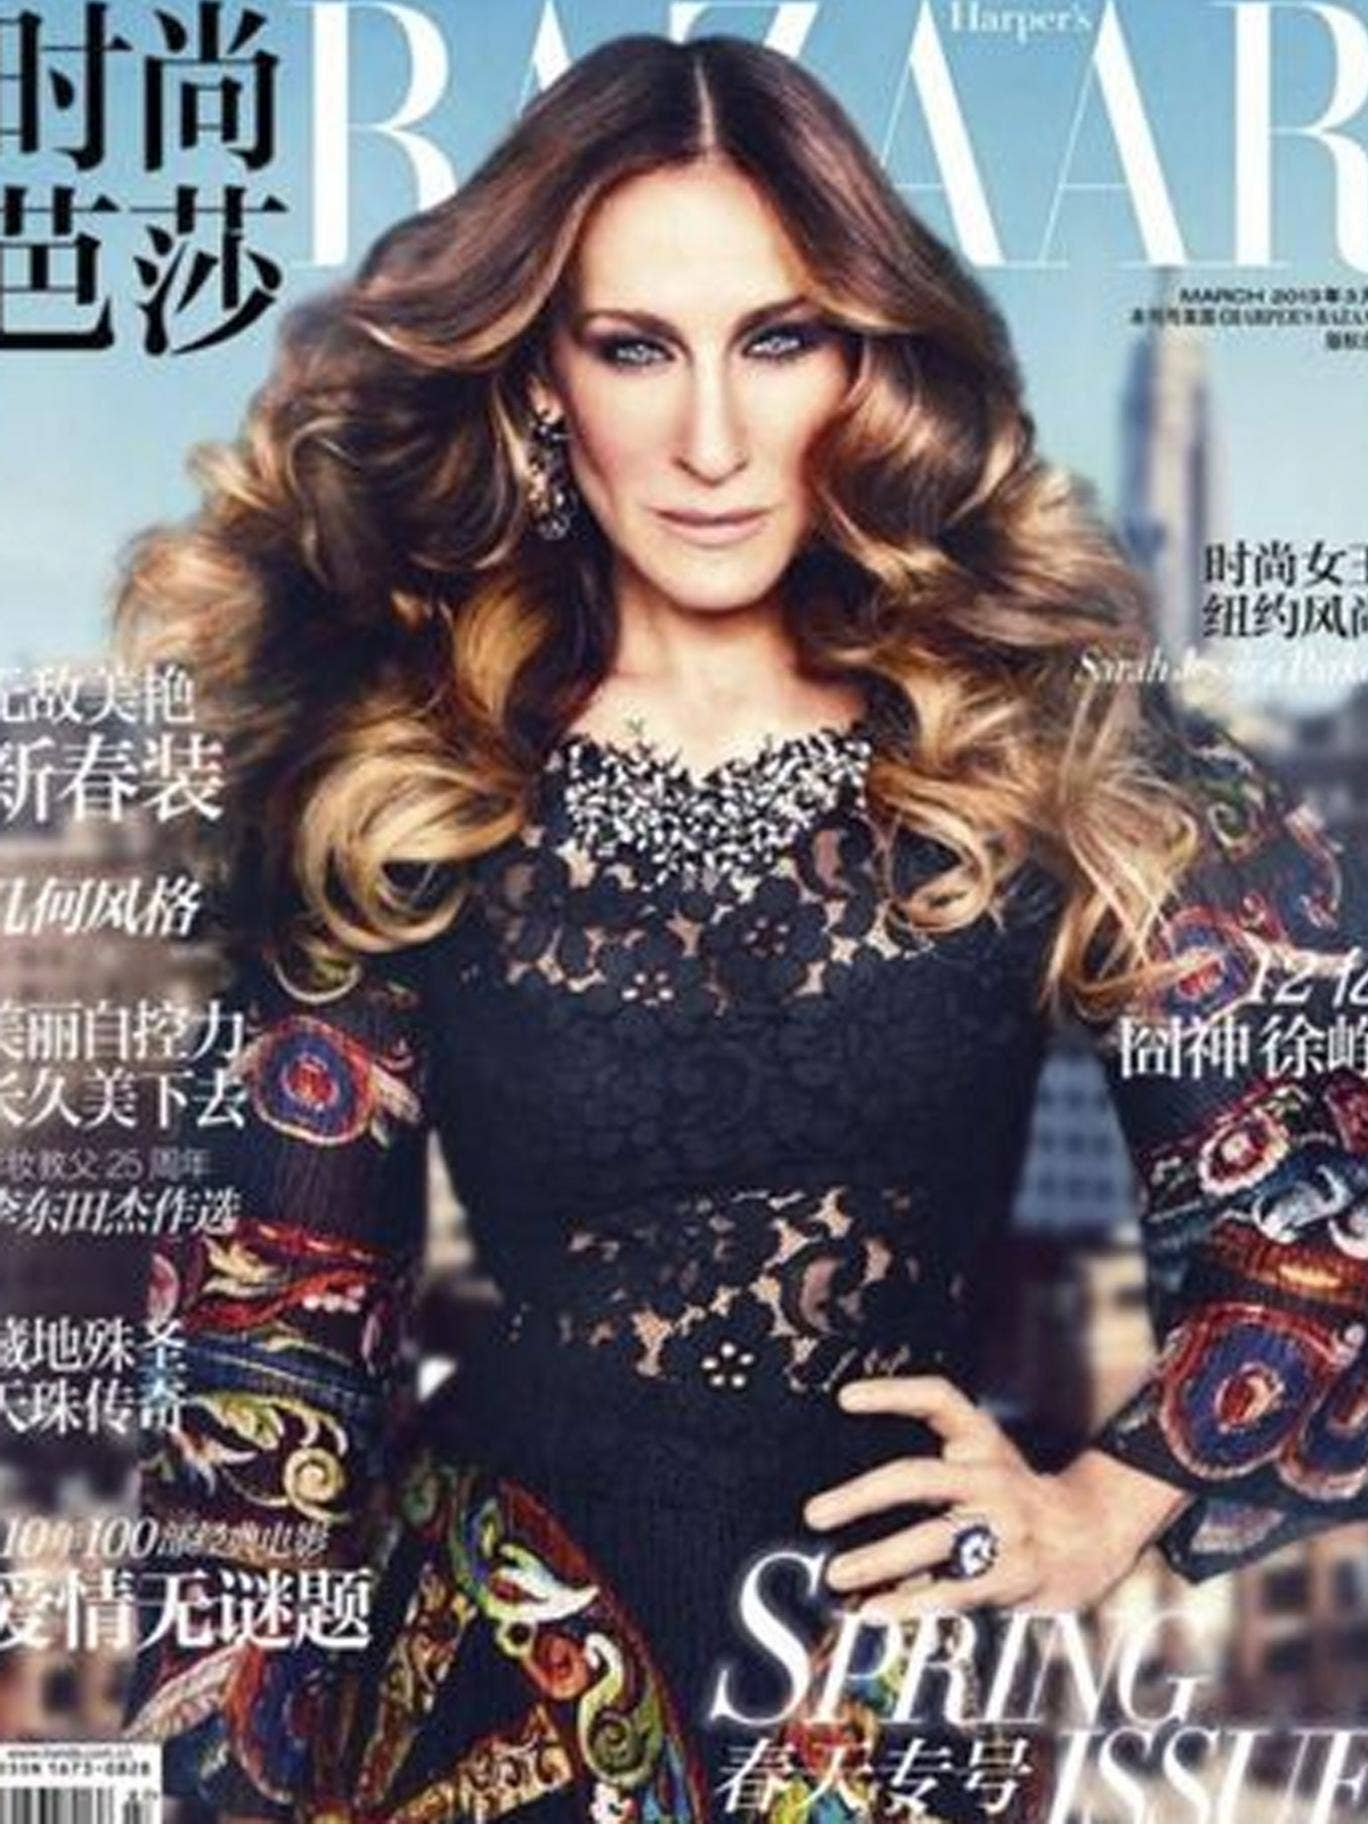 A photoshopped Sarah Jessica Parker on the cover of the Chinese Harper's Bazaar magazine